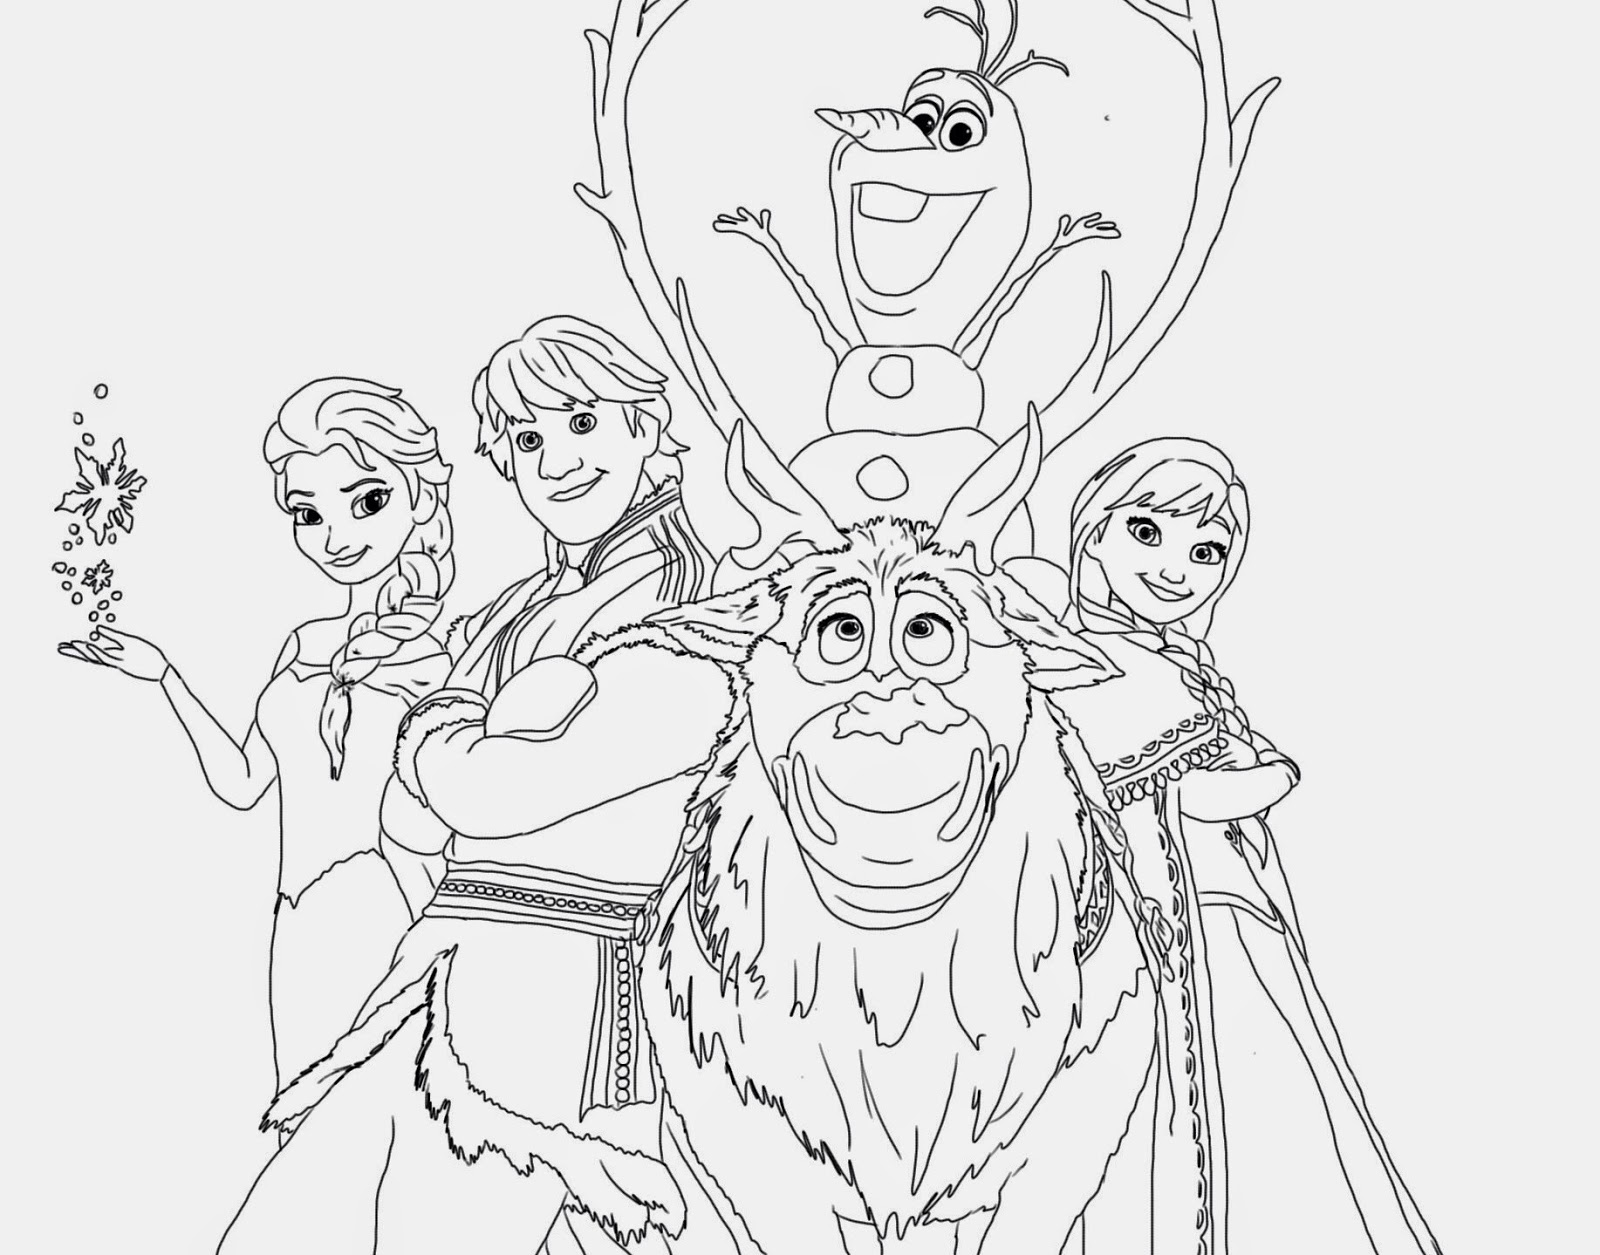 Disney fairies coloring pages Free Coloring Pages - disney coloring pages free to print